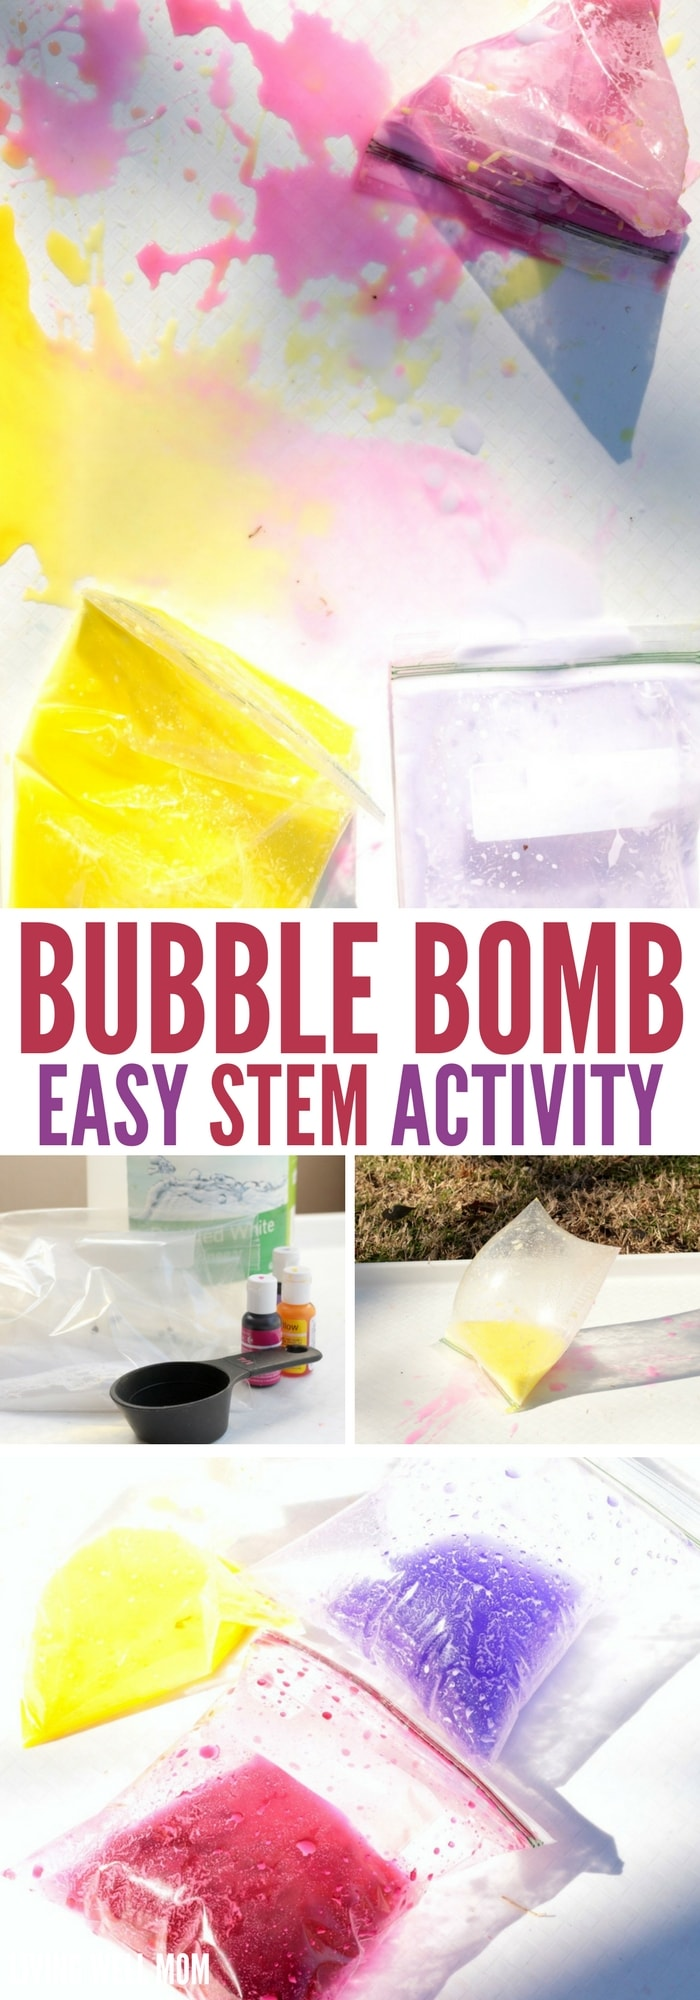 This fun STEM activity will delight kids of all ages. They'll love creating the simple and safe chemical reactions that cause these Bubble Bombs to explode!